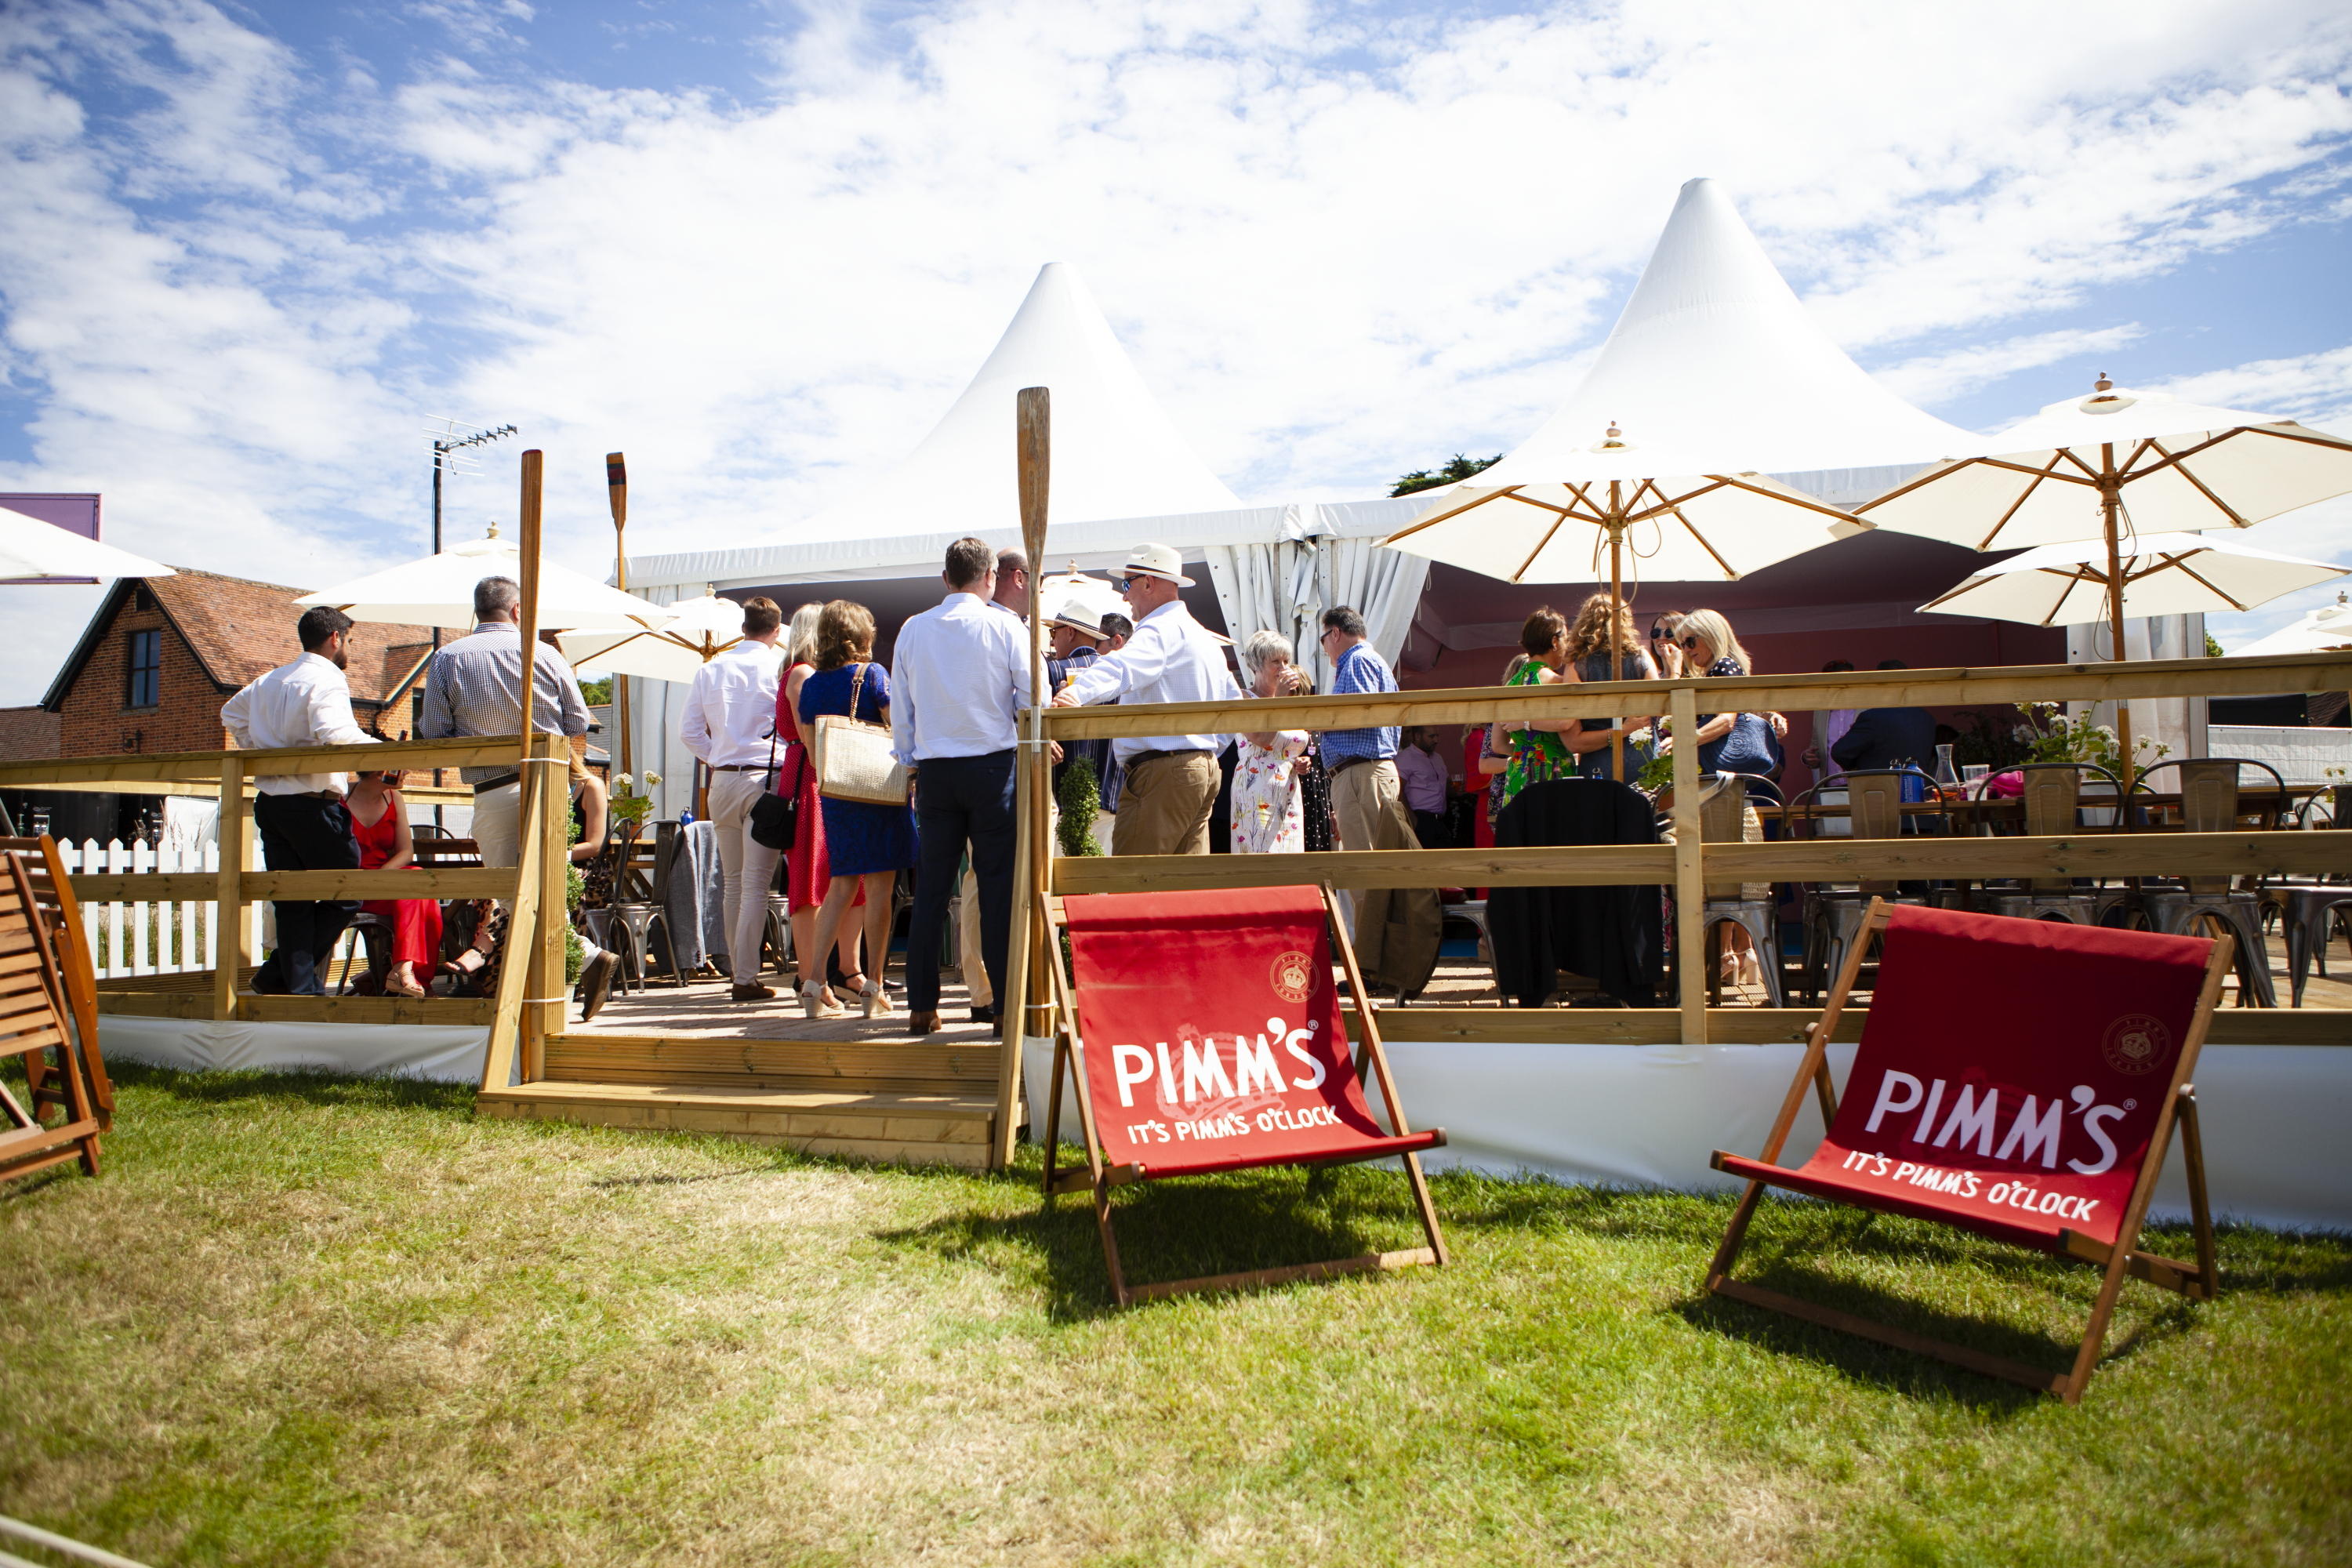 redgrave-pimms-chairs.jpg